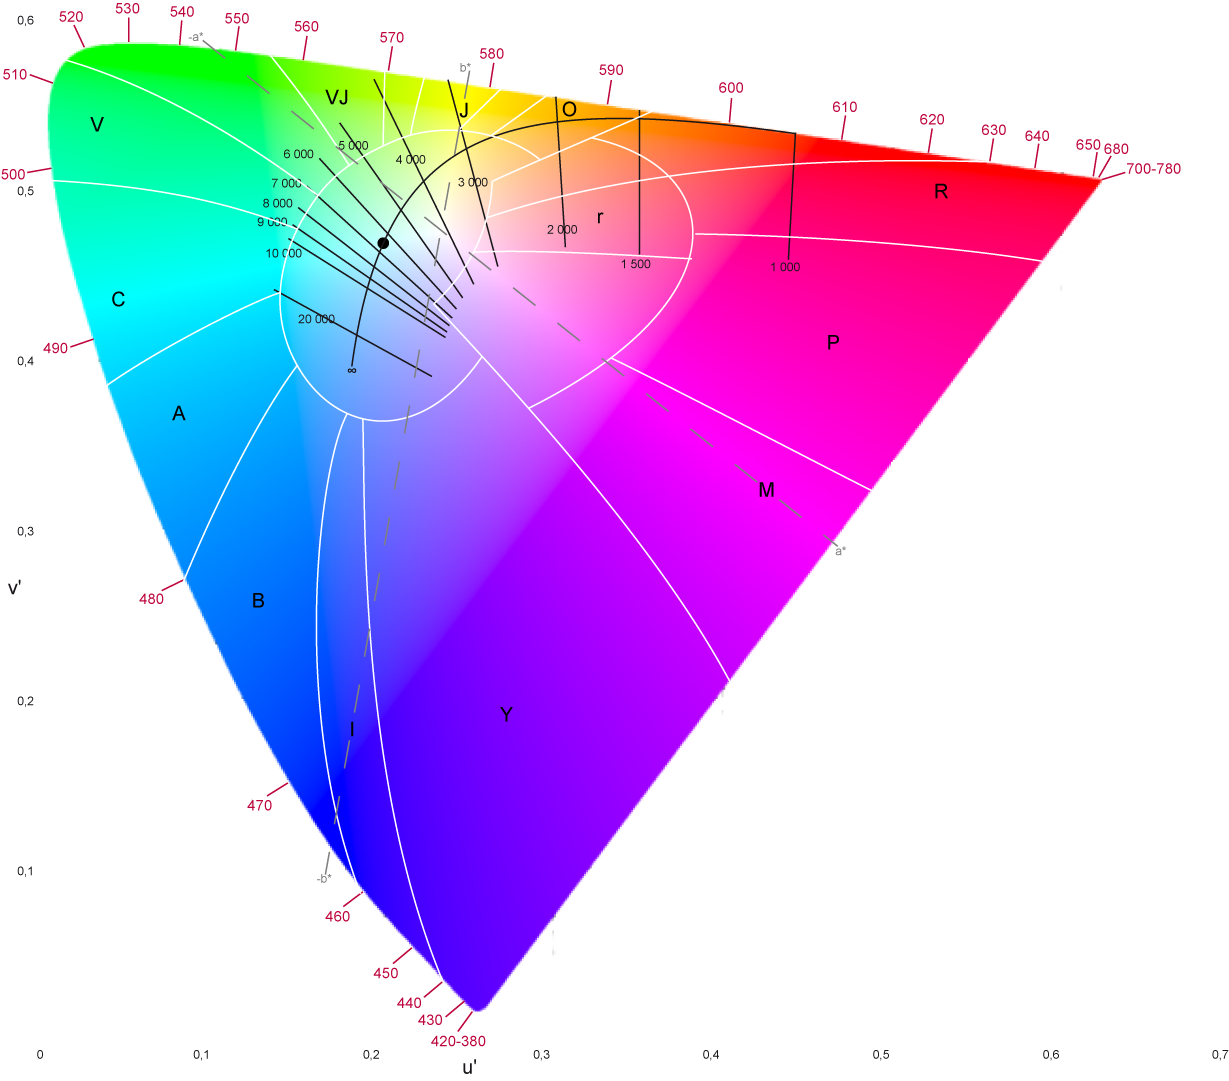 Online yuv color picker - The International Commission On Illumination Cie Defined The Lab Color Space Which Aims To